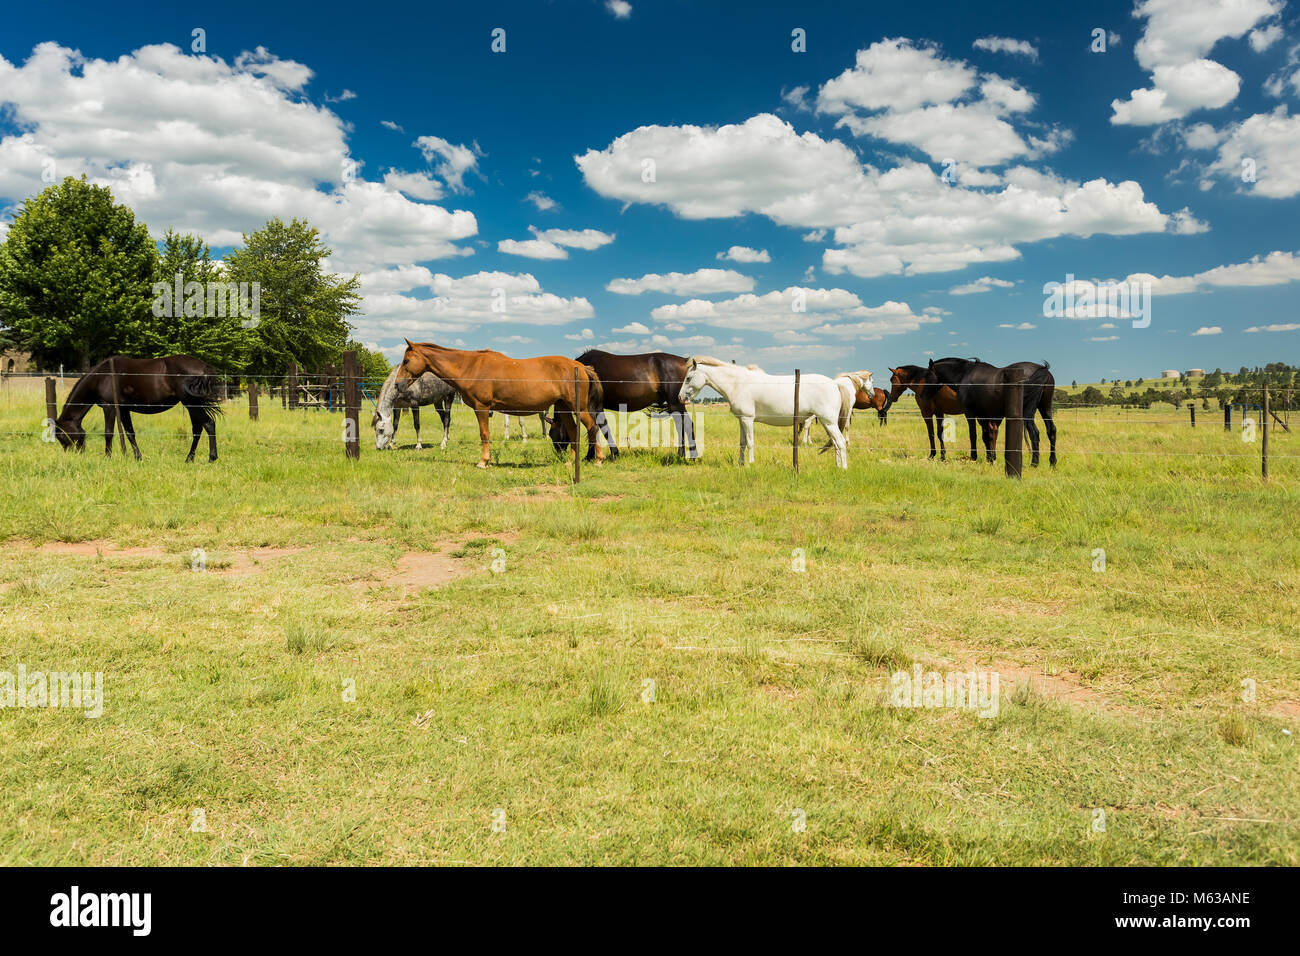 Small herd of horses grazing in a rural field behind a fence Stock Photo